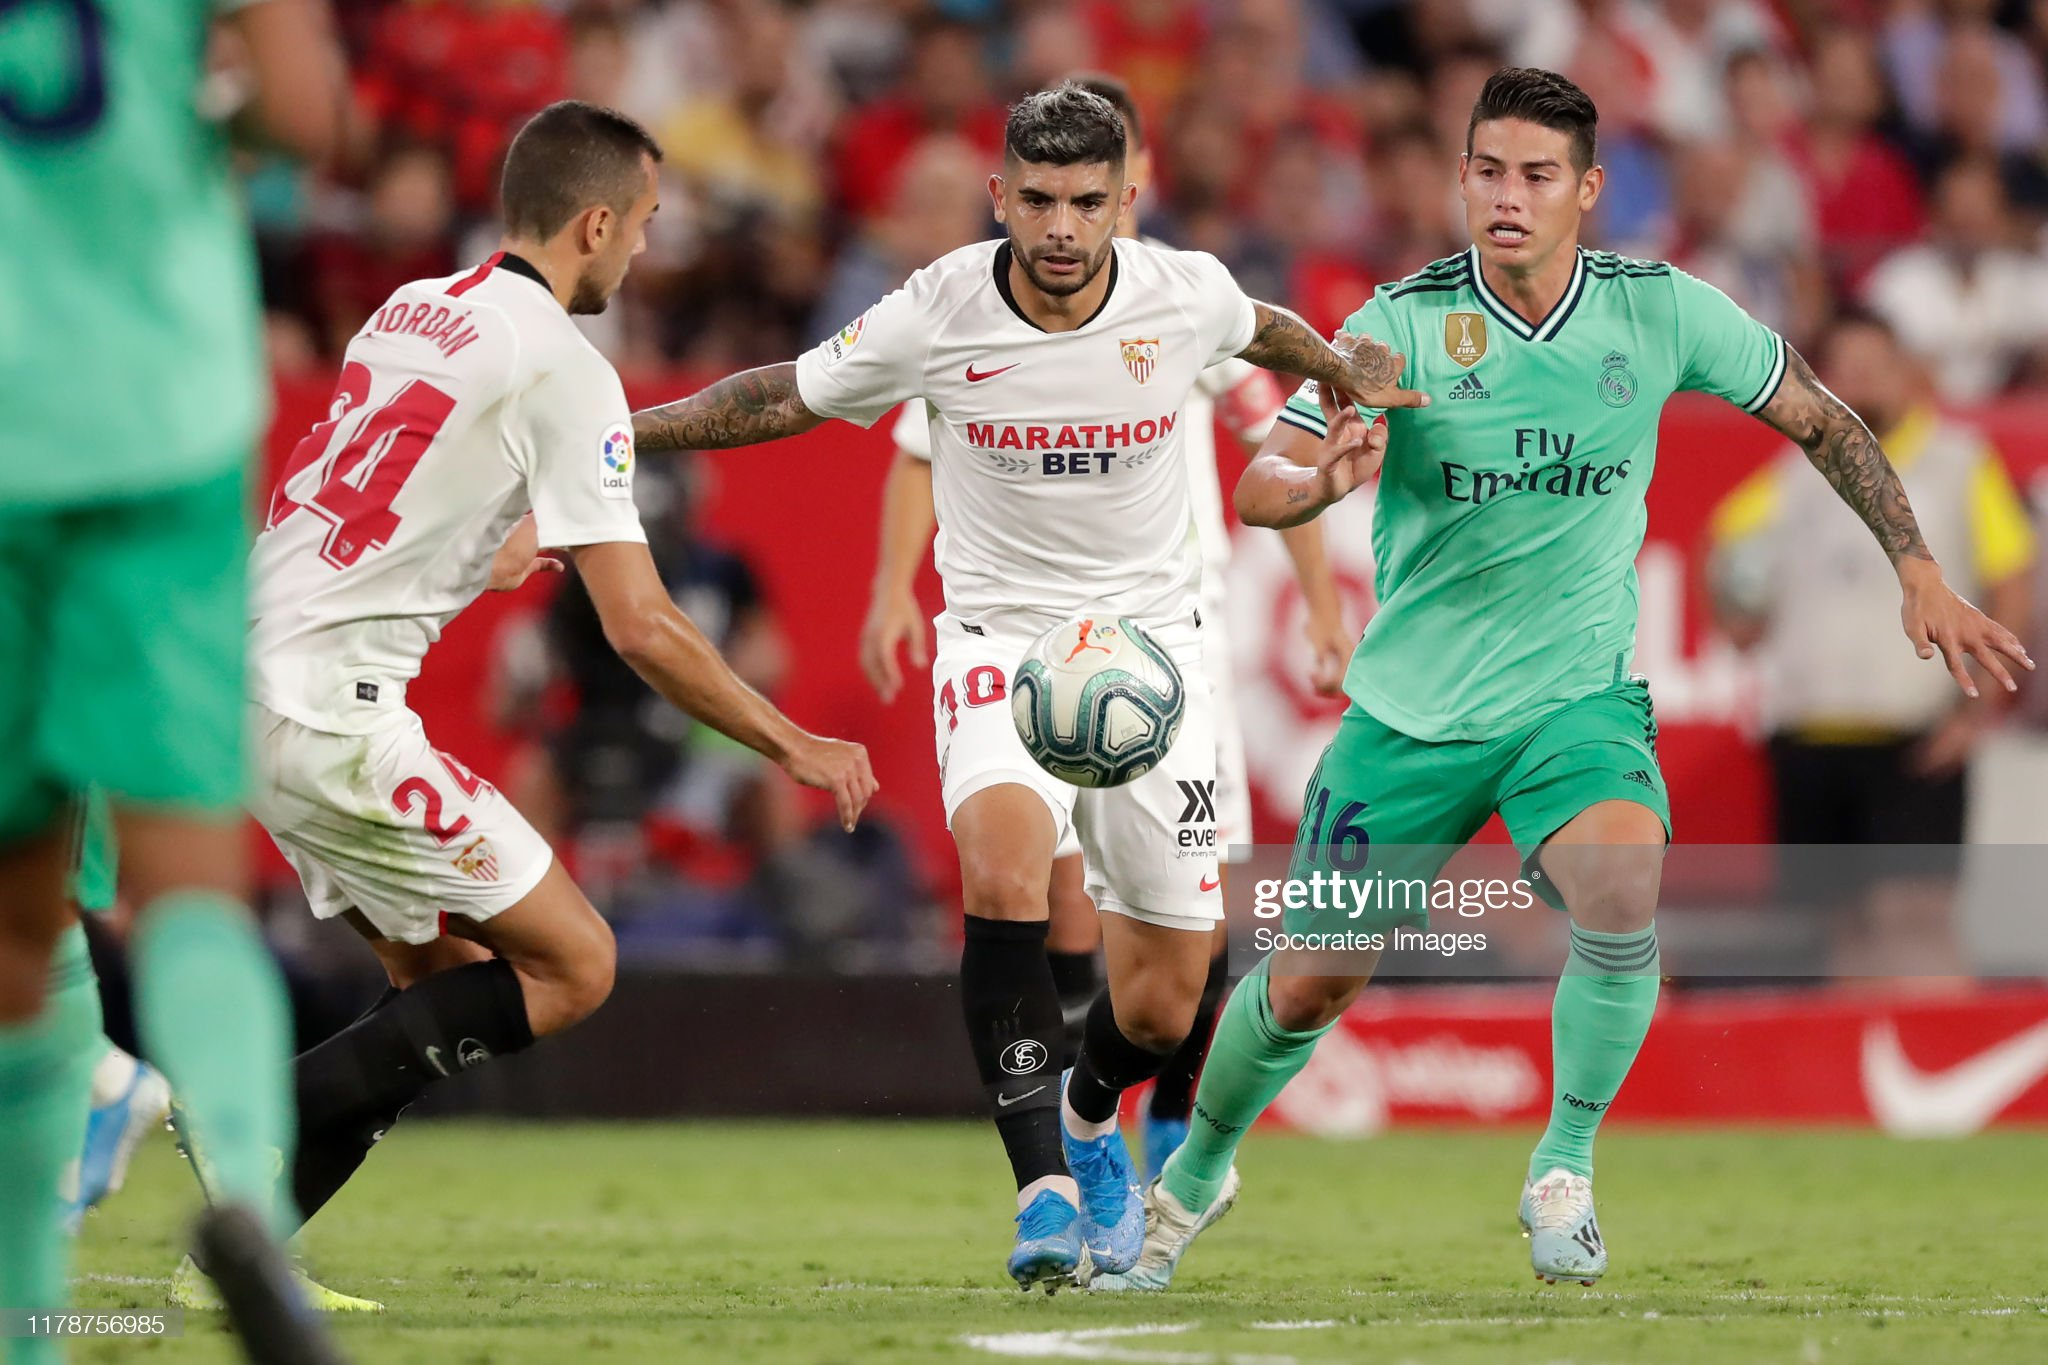 Real Madrid v Sevilla preview, prediction and odds